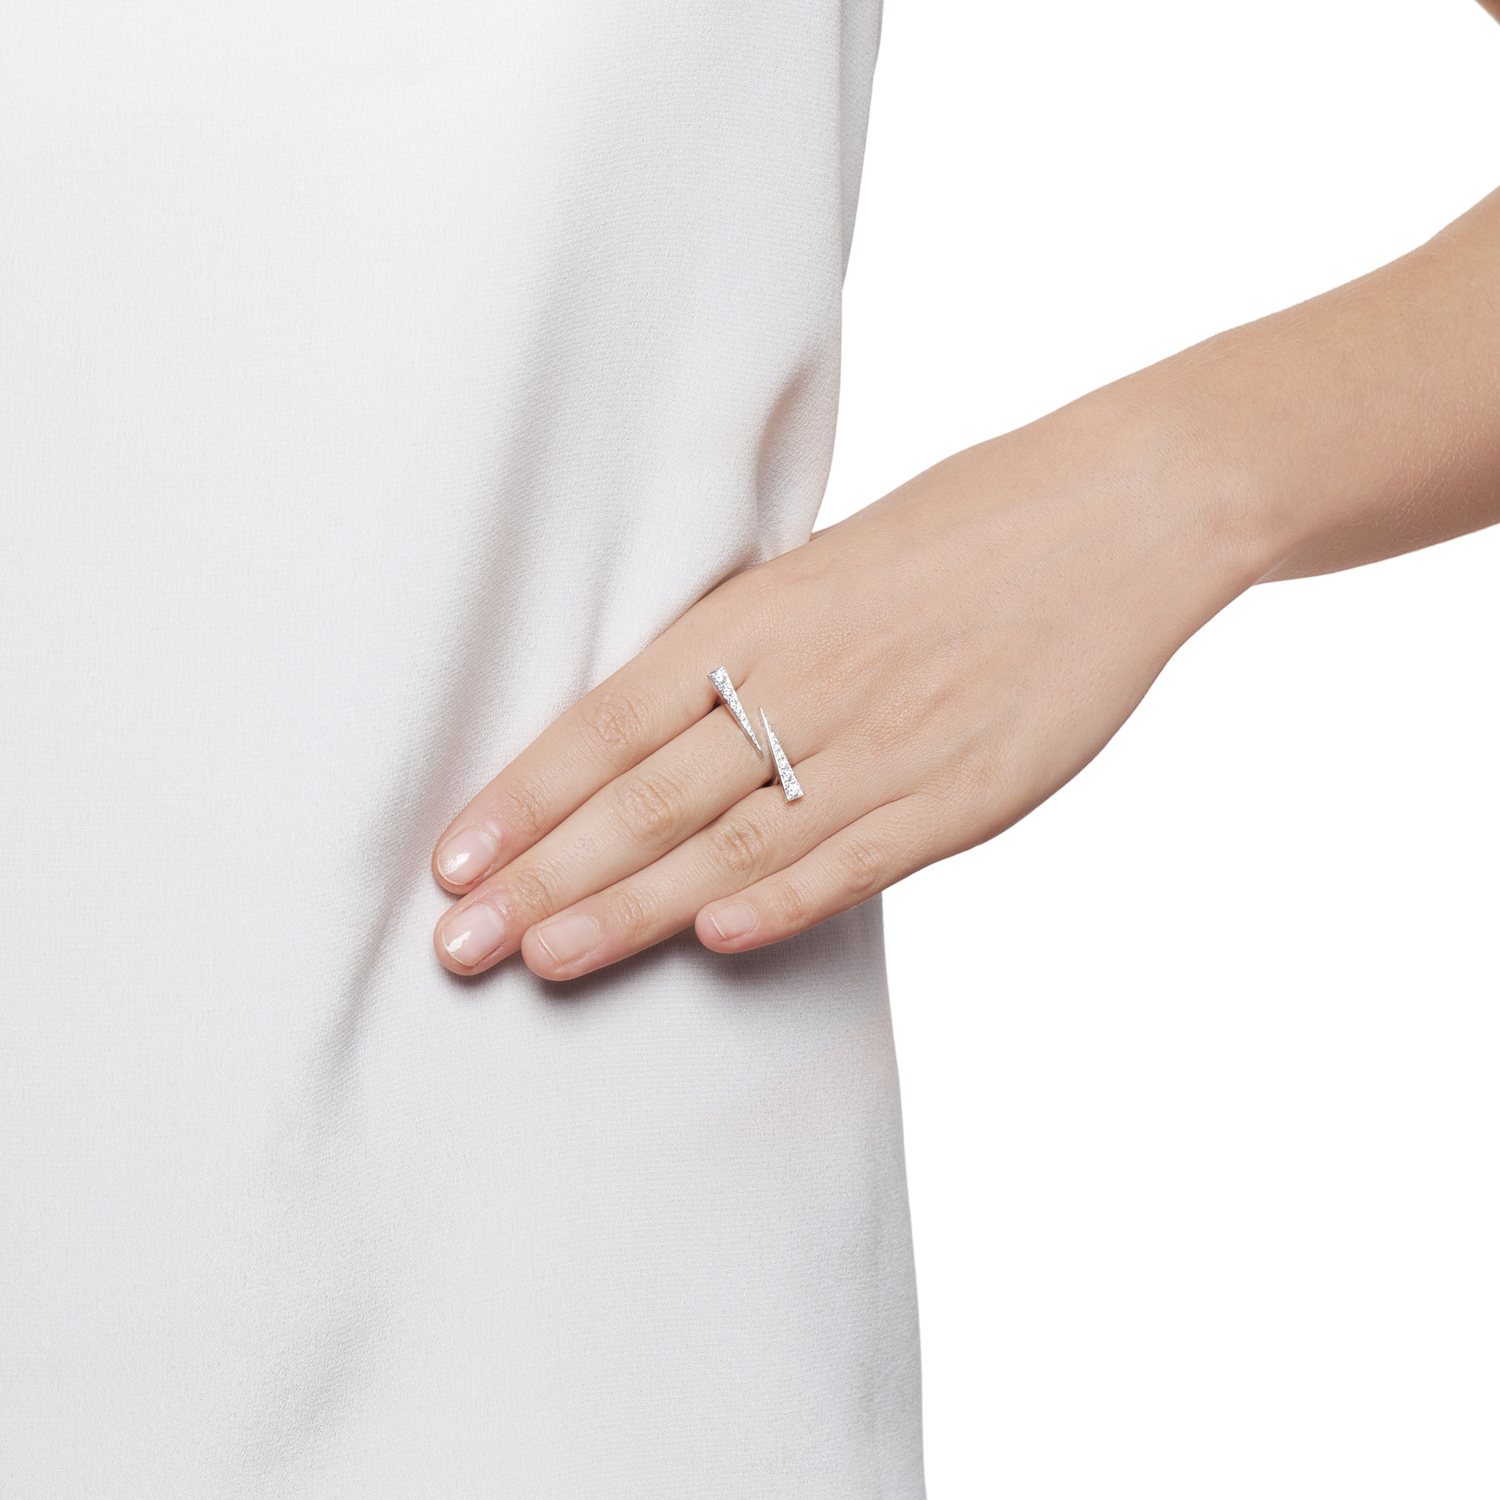 Twin Spark Ring- Diamonds White Gold by Daou Jewellery on curated-crowd.com